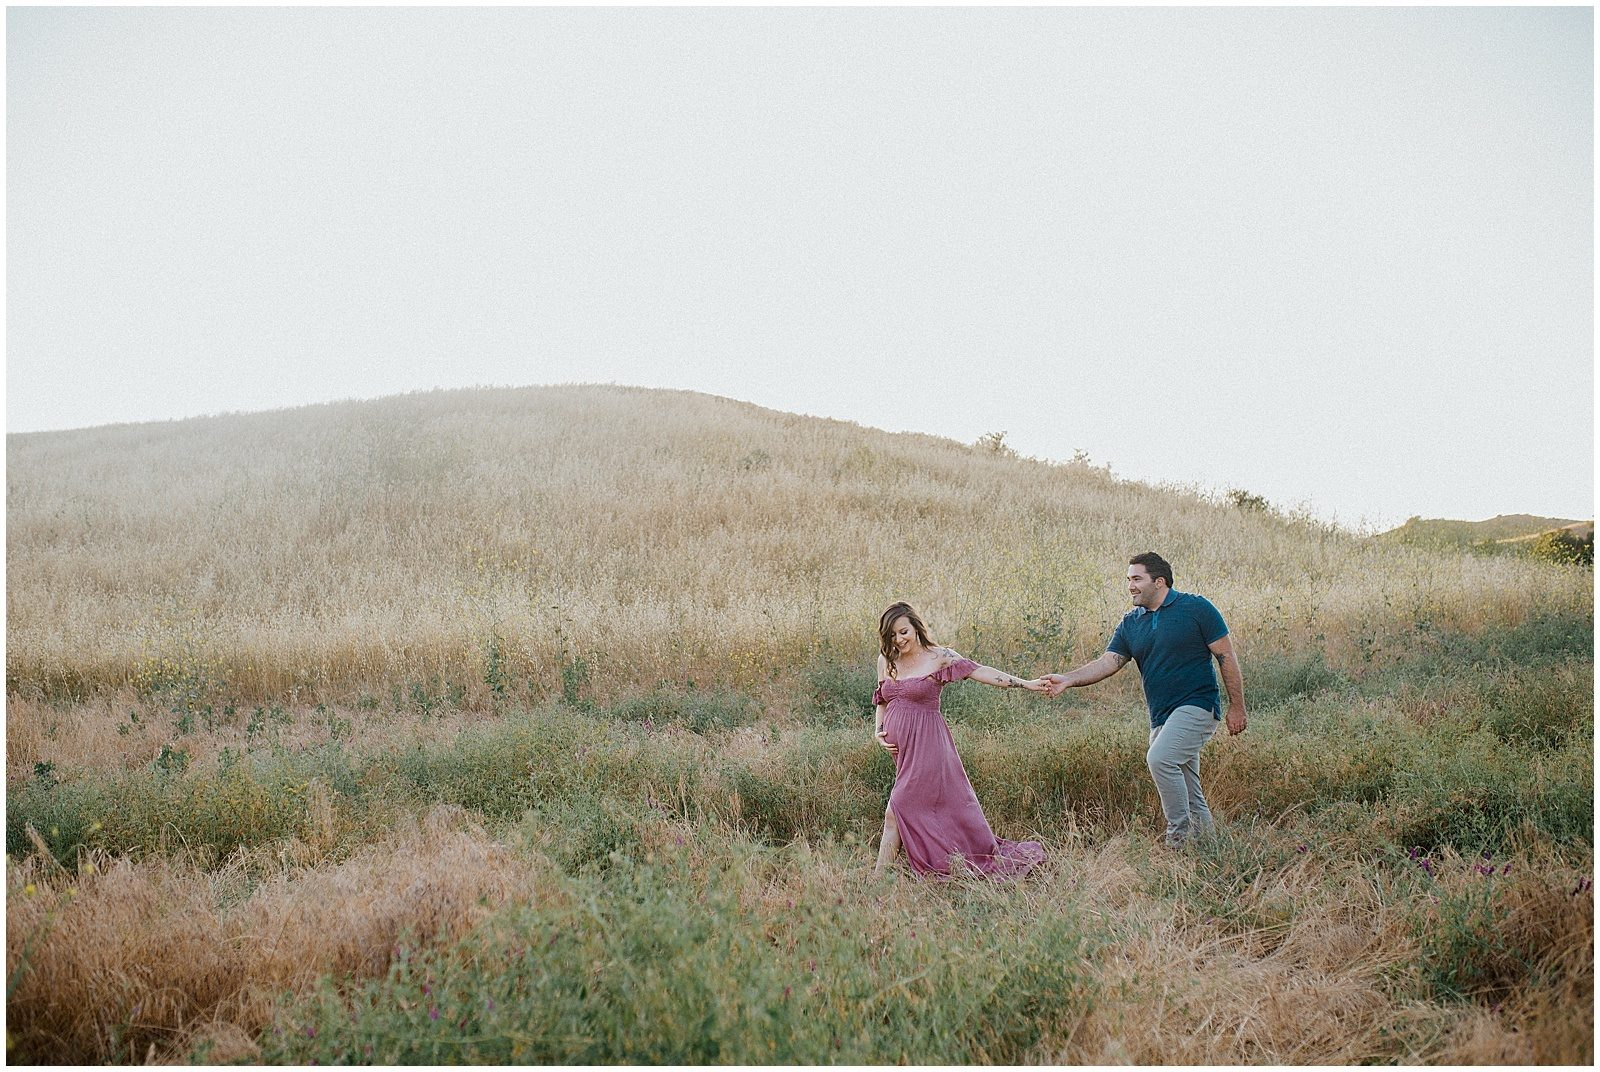 Orange County Maternity Photographer Sonja Hammad Photography 0236